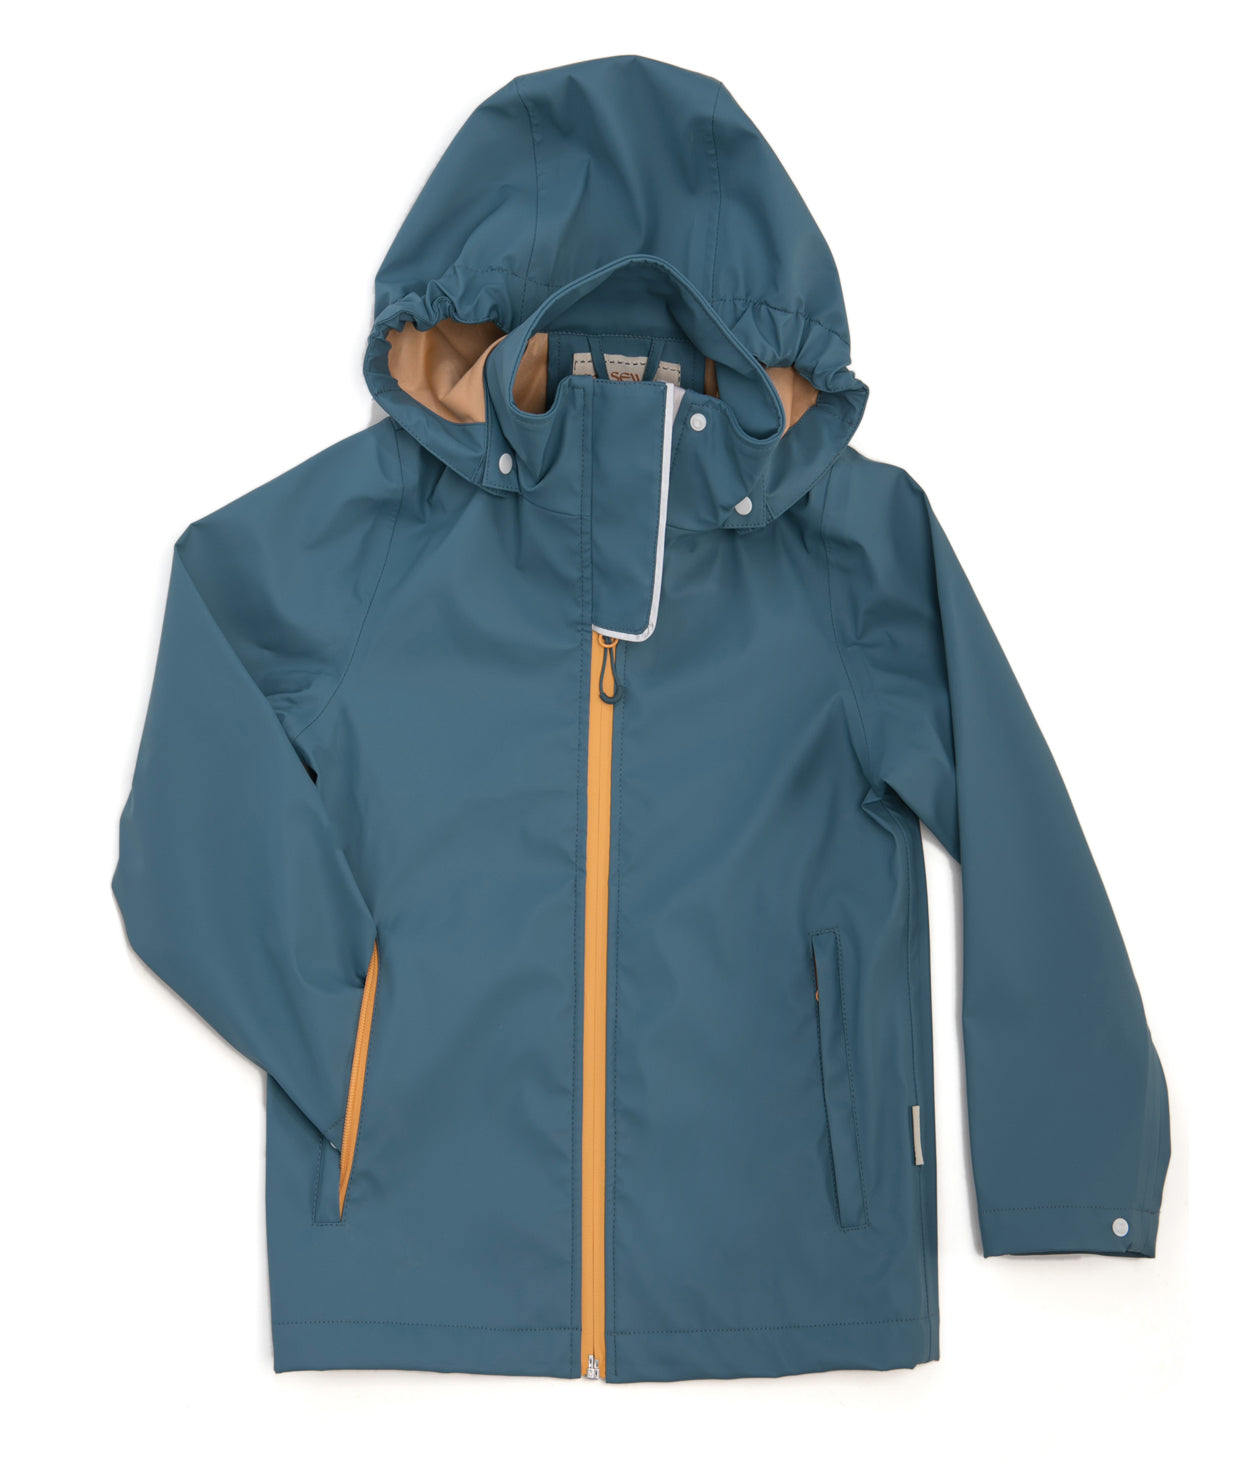 Horseware Kids Rain Jacket - North Shore Saddlery